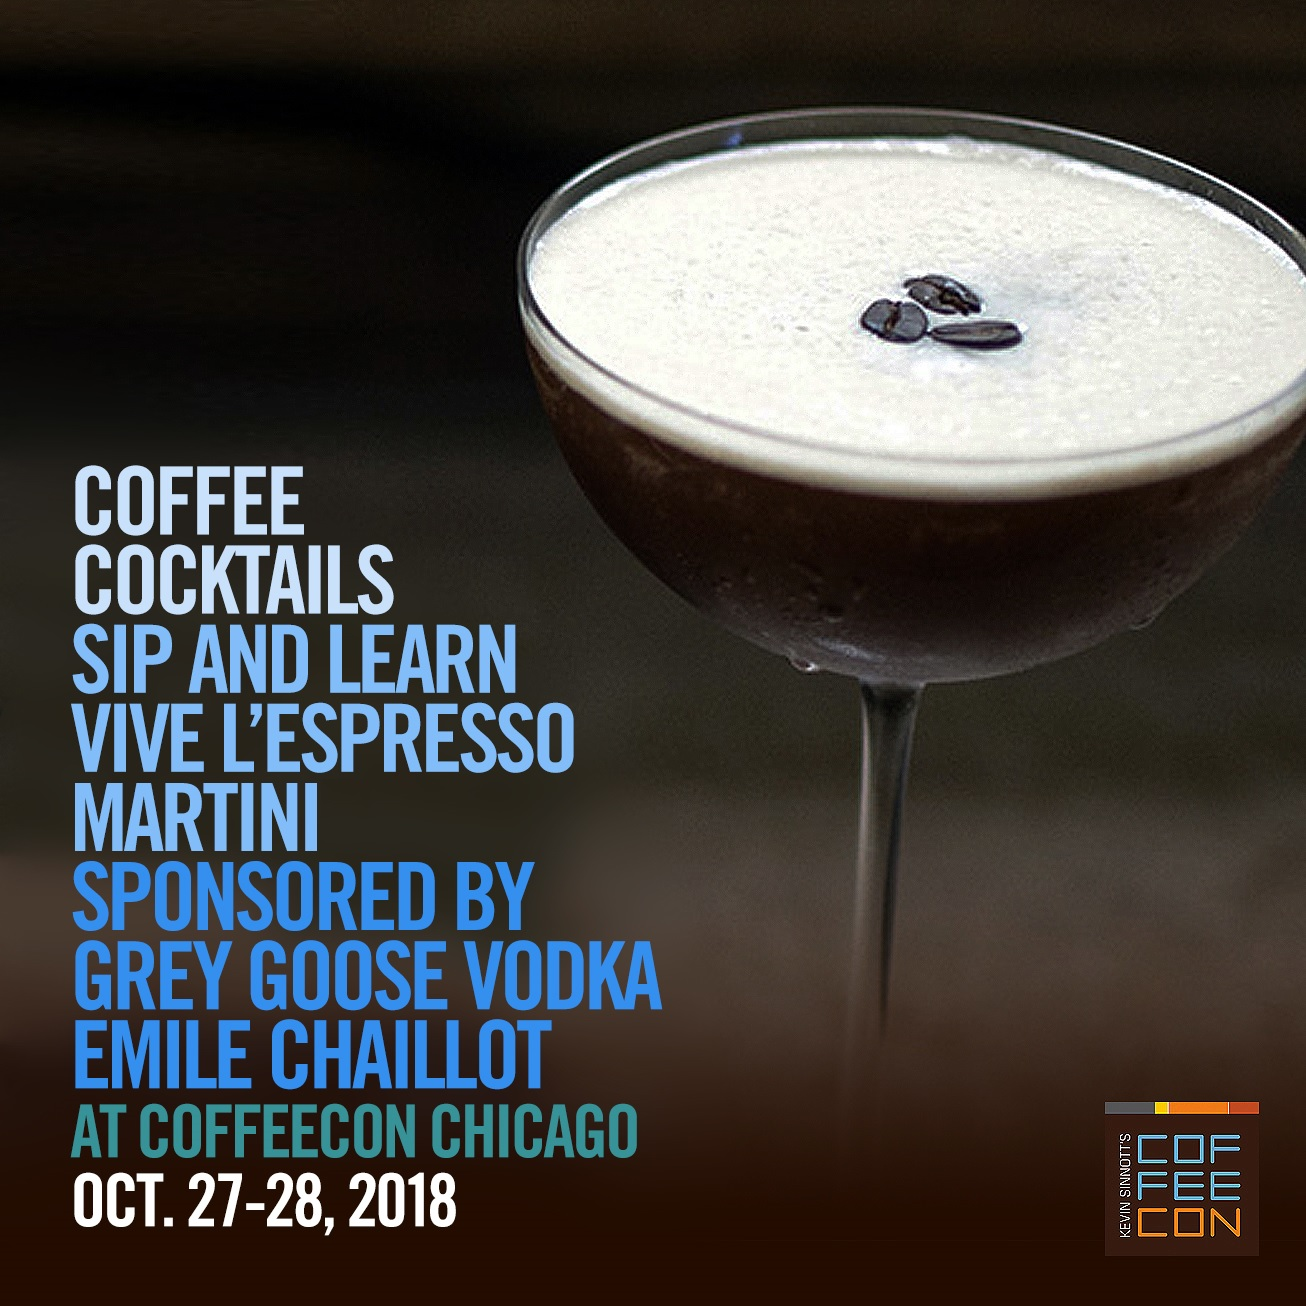 Coffee Cocktails with Grey Goose Vodka CoffeeConChicago 2018